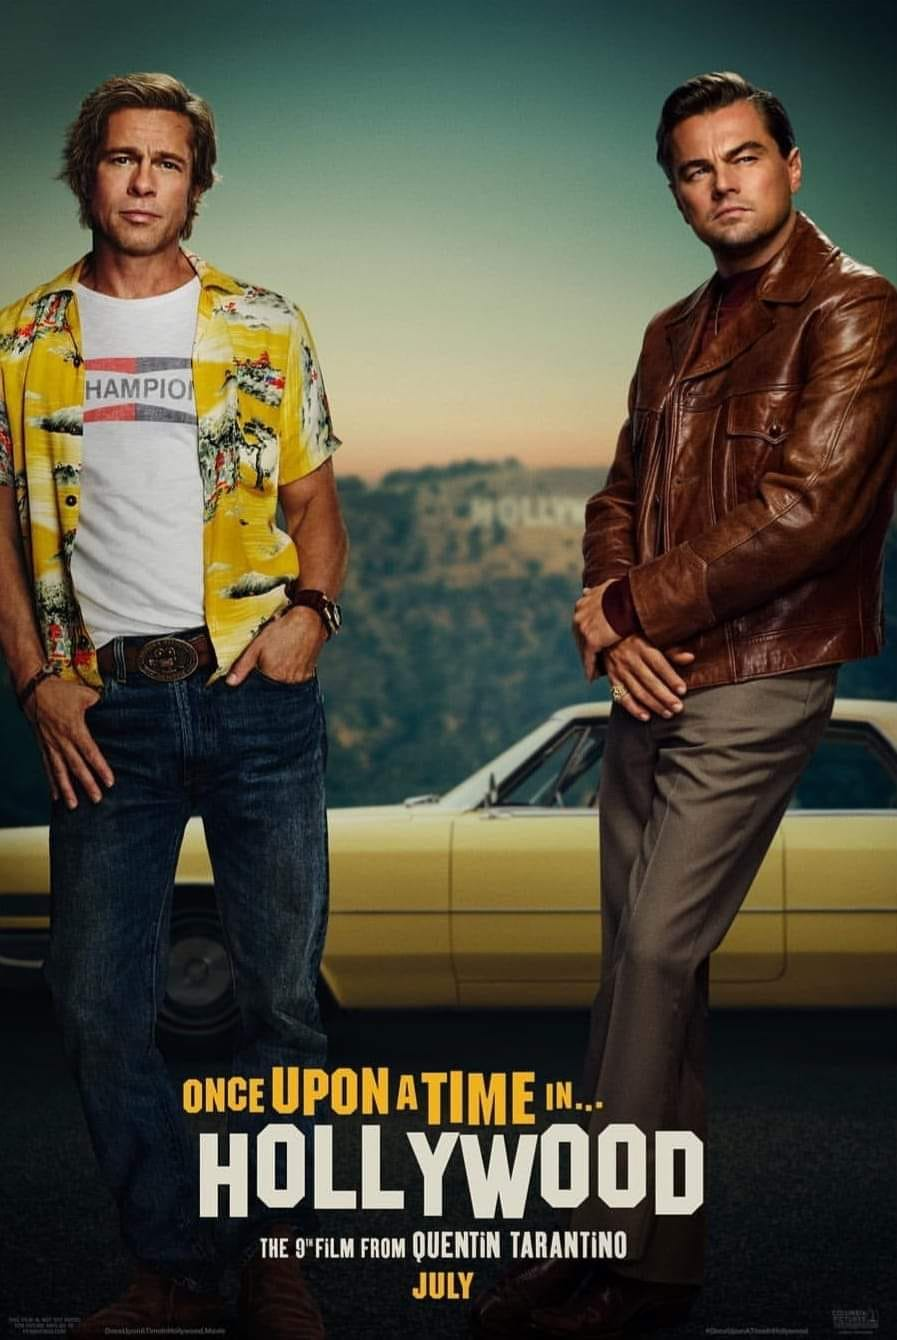 Risultati immagini per once upon a time in hollywood poster